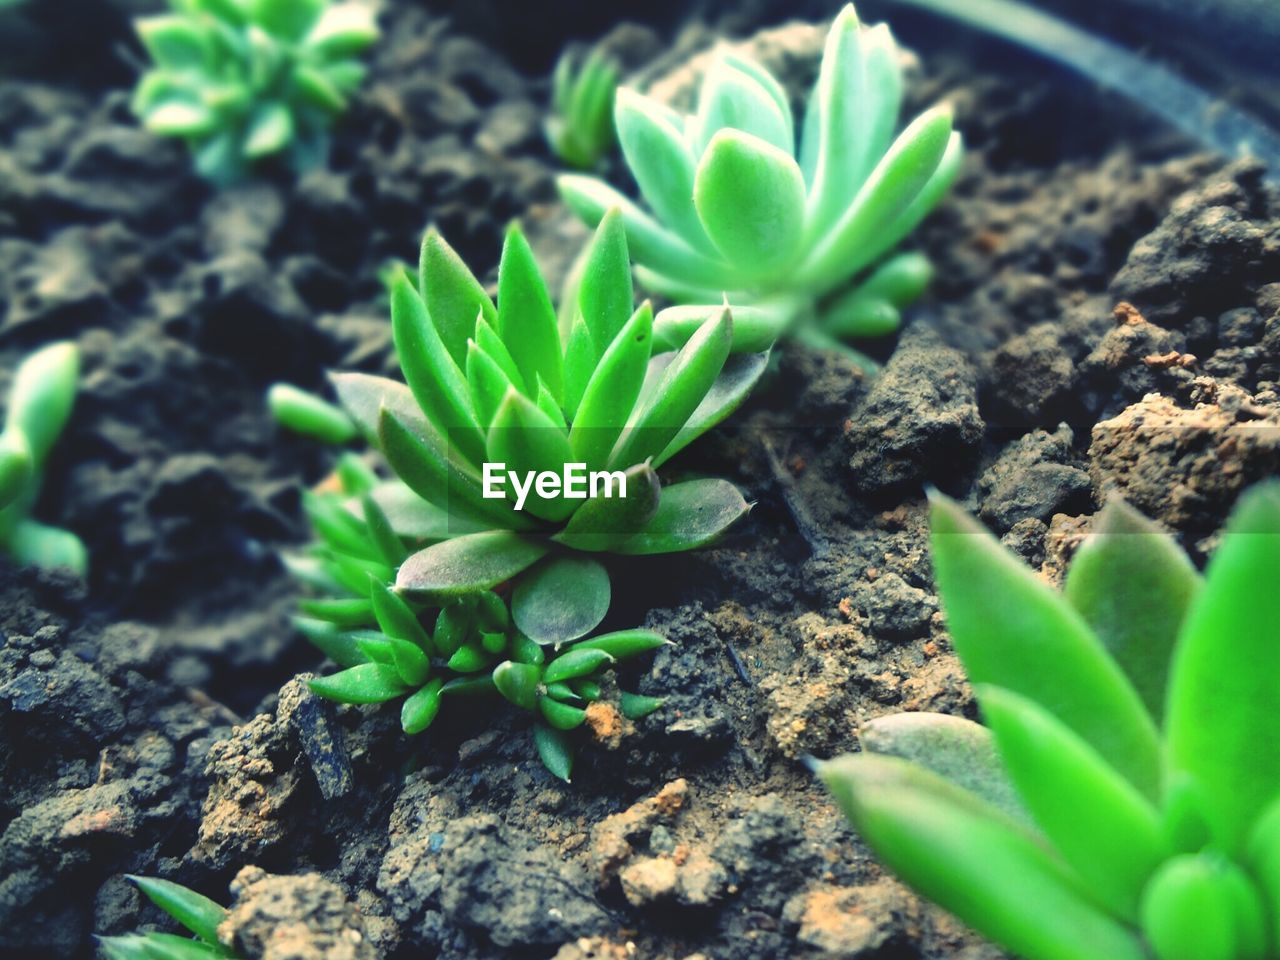 growth, plant, green color, nature, young plant, new life, beginnings, fragility, leaf, growing, beauty in nature, sapling, botany, green, selective focus, no people, freshness, potted plant, day, outdoors, close-up